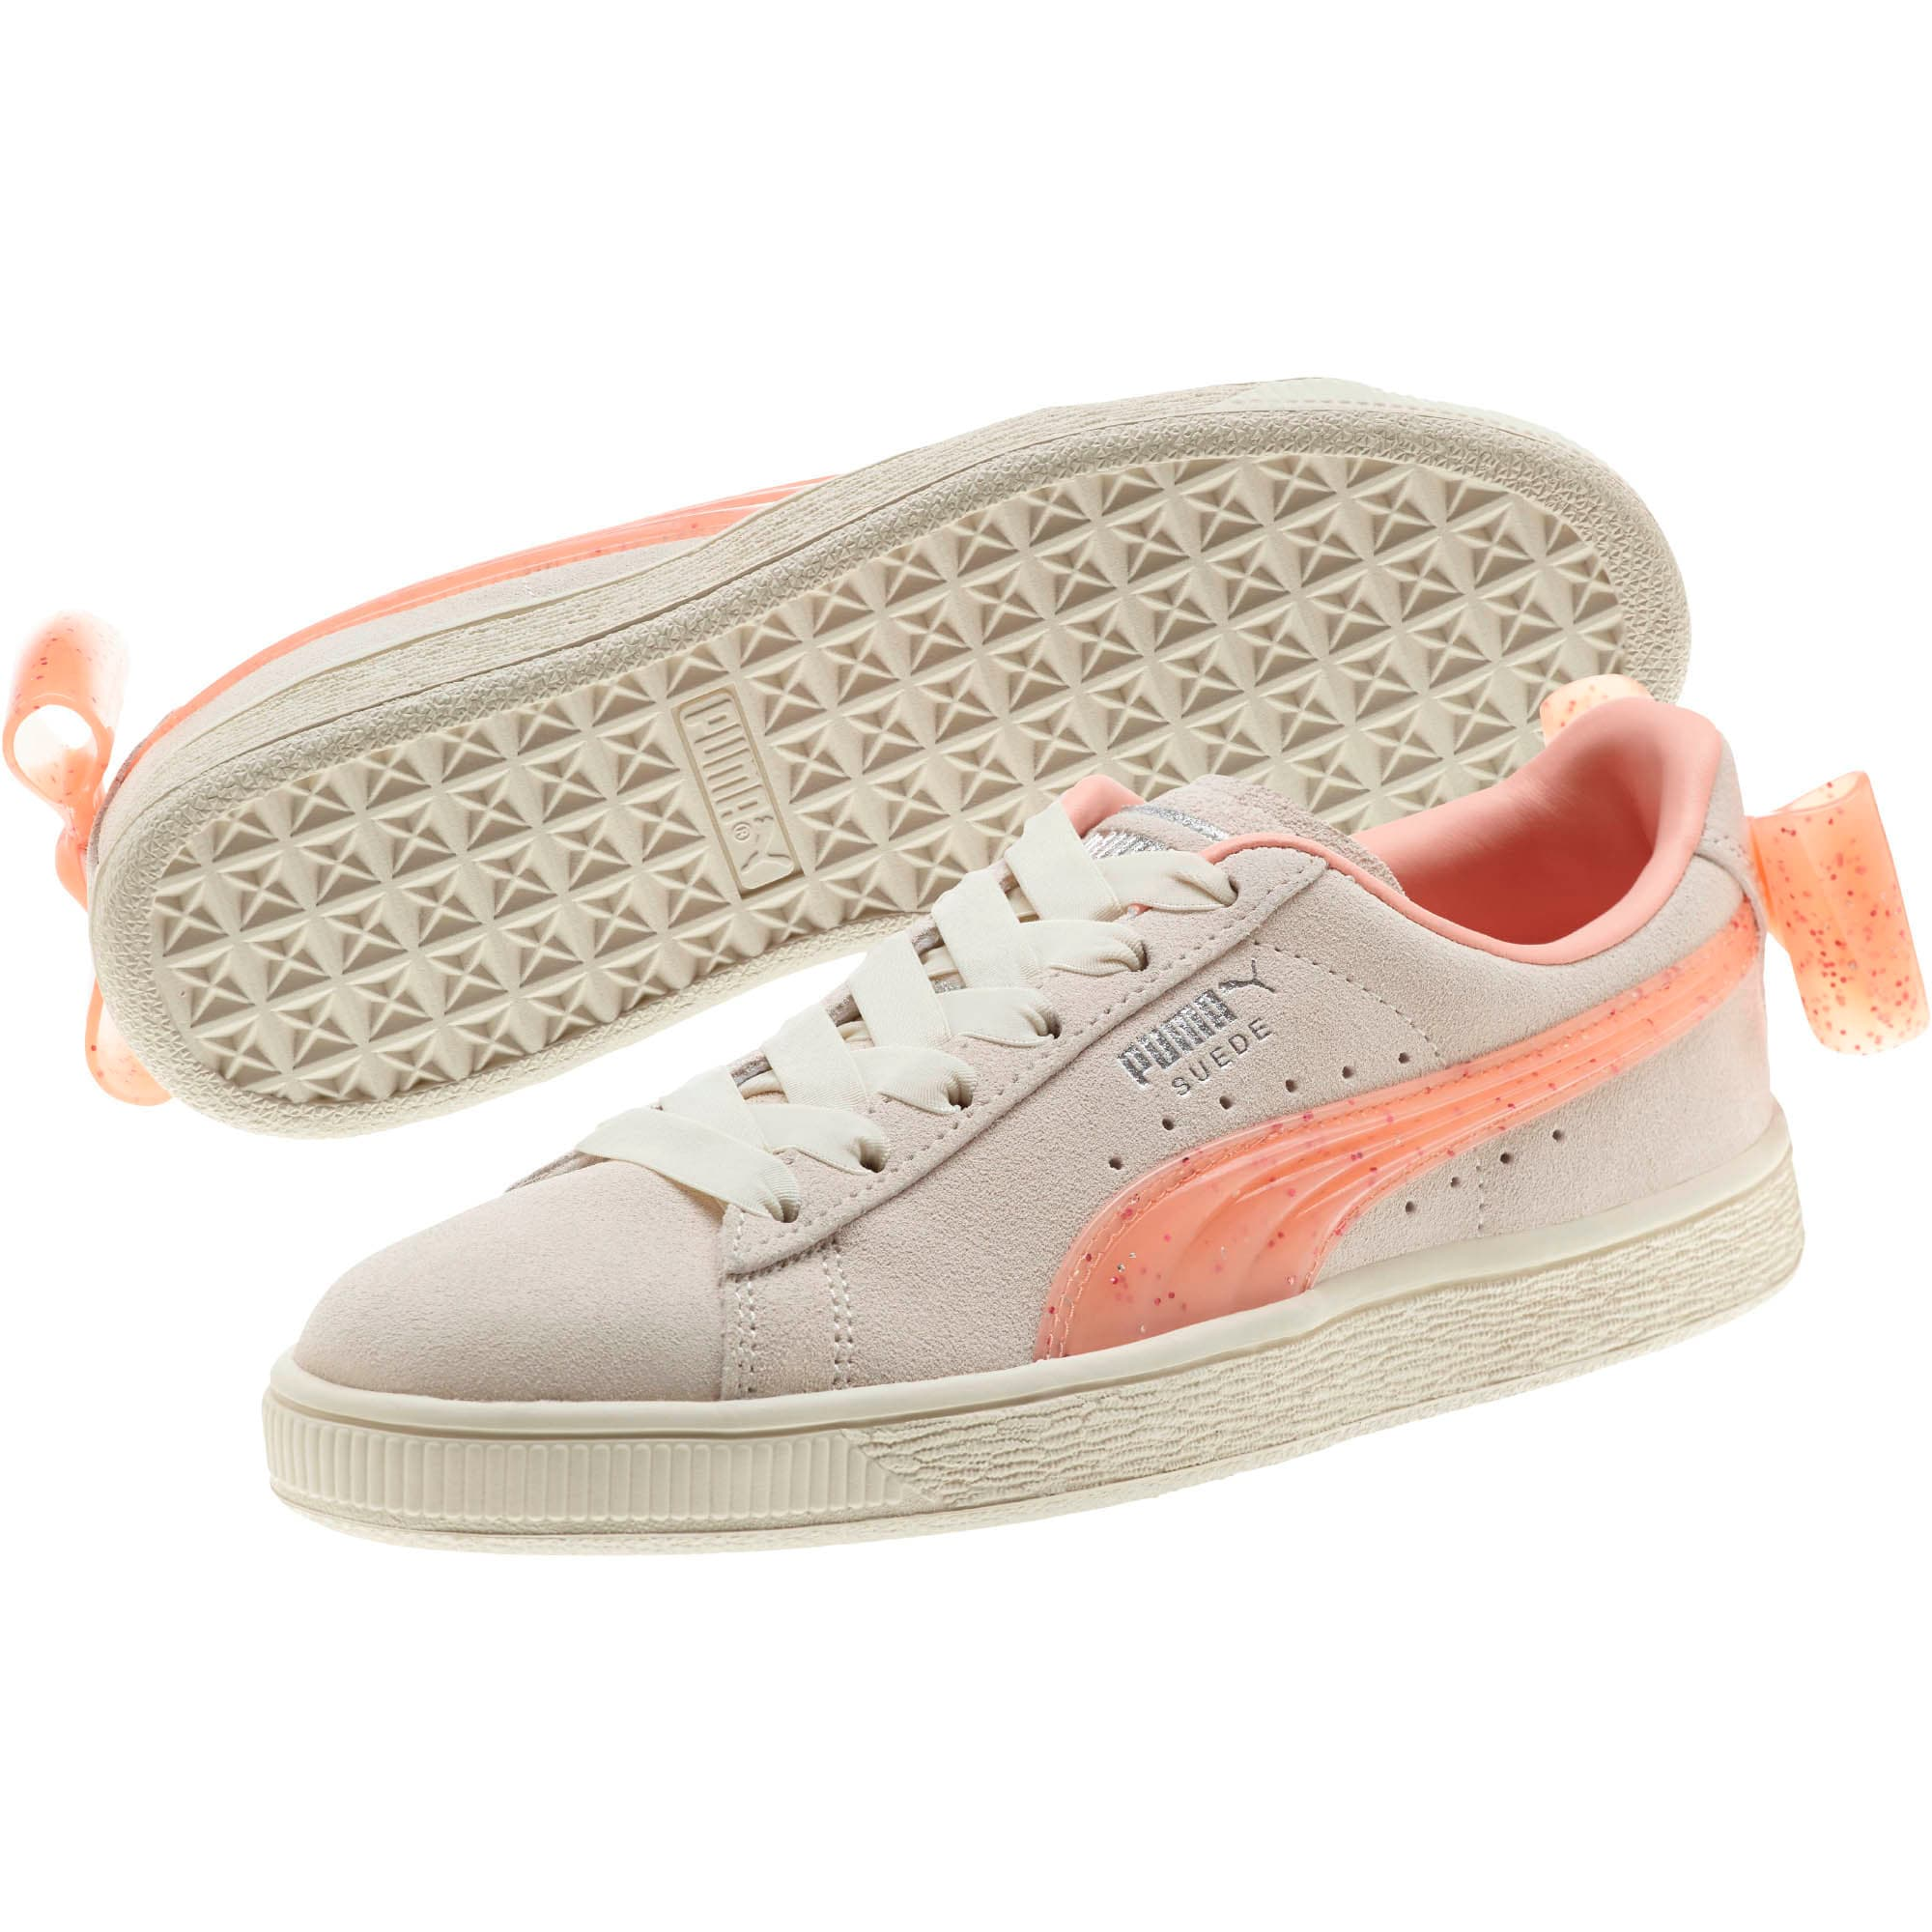 Miniatura 2 de Zapatos deportivos Suede Jelly Bow JR, Whis White-Peach Bud-Silver, mediano